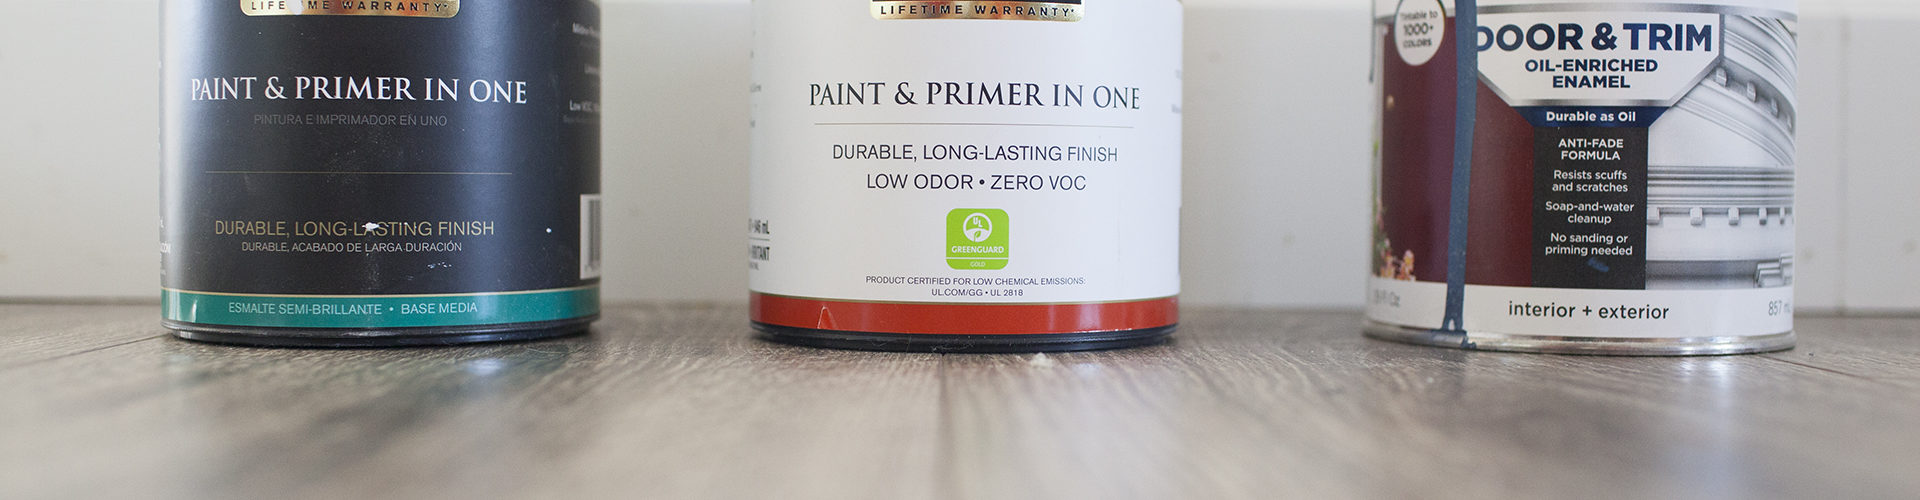 How to Touch Up Paint to Get an Exact Match - Home Staging